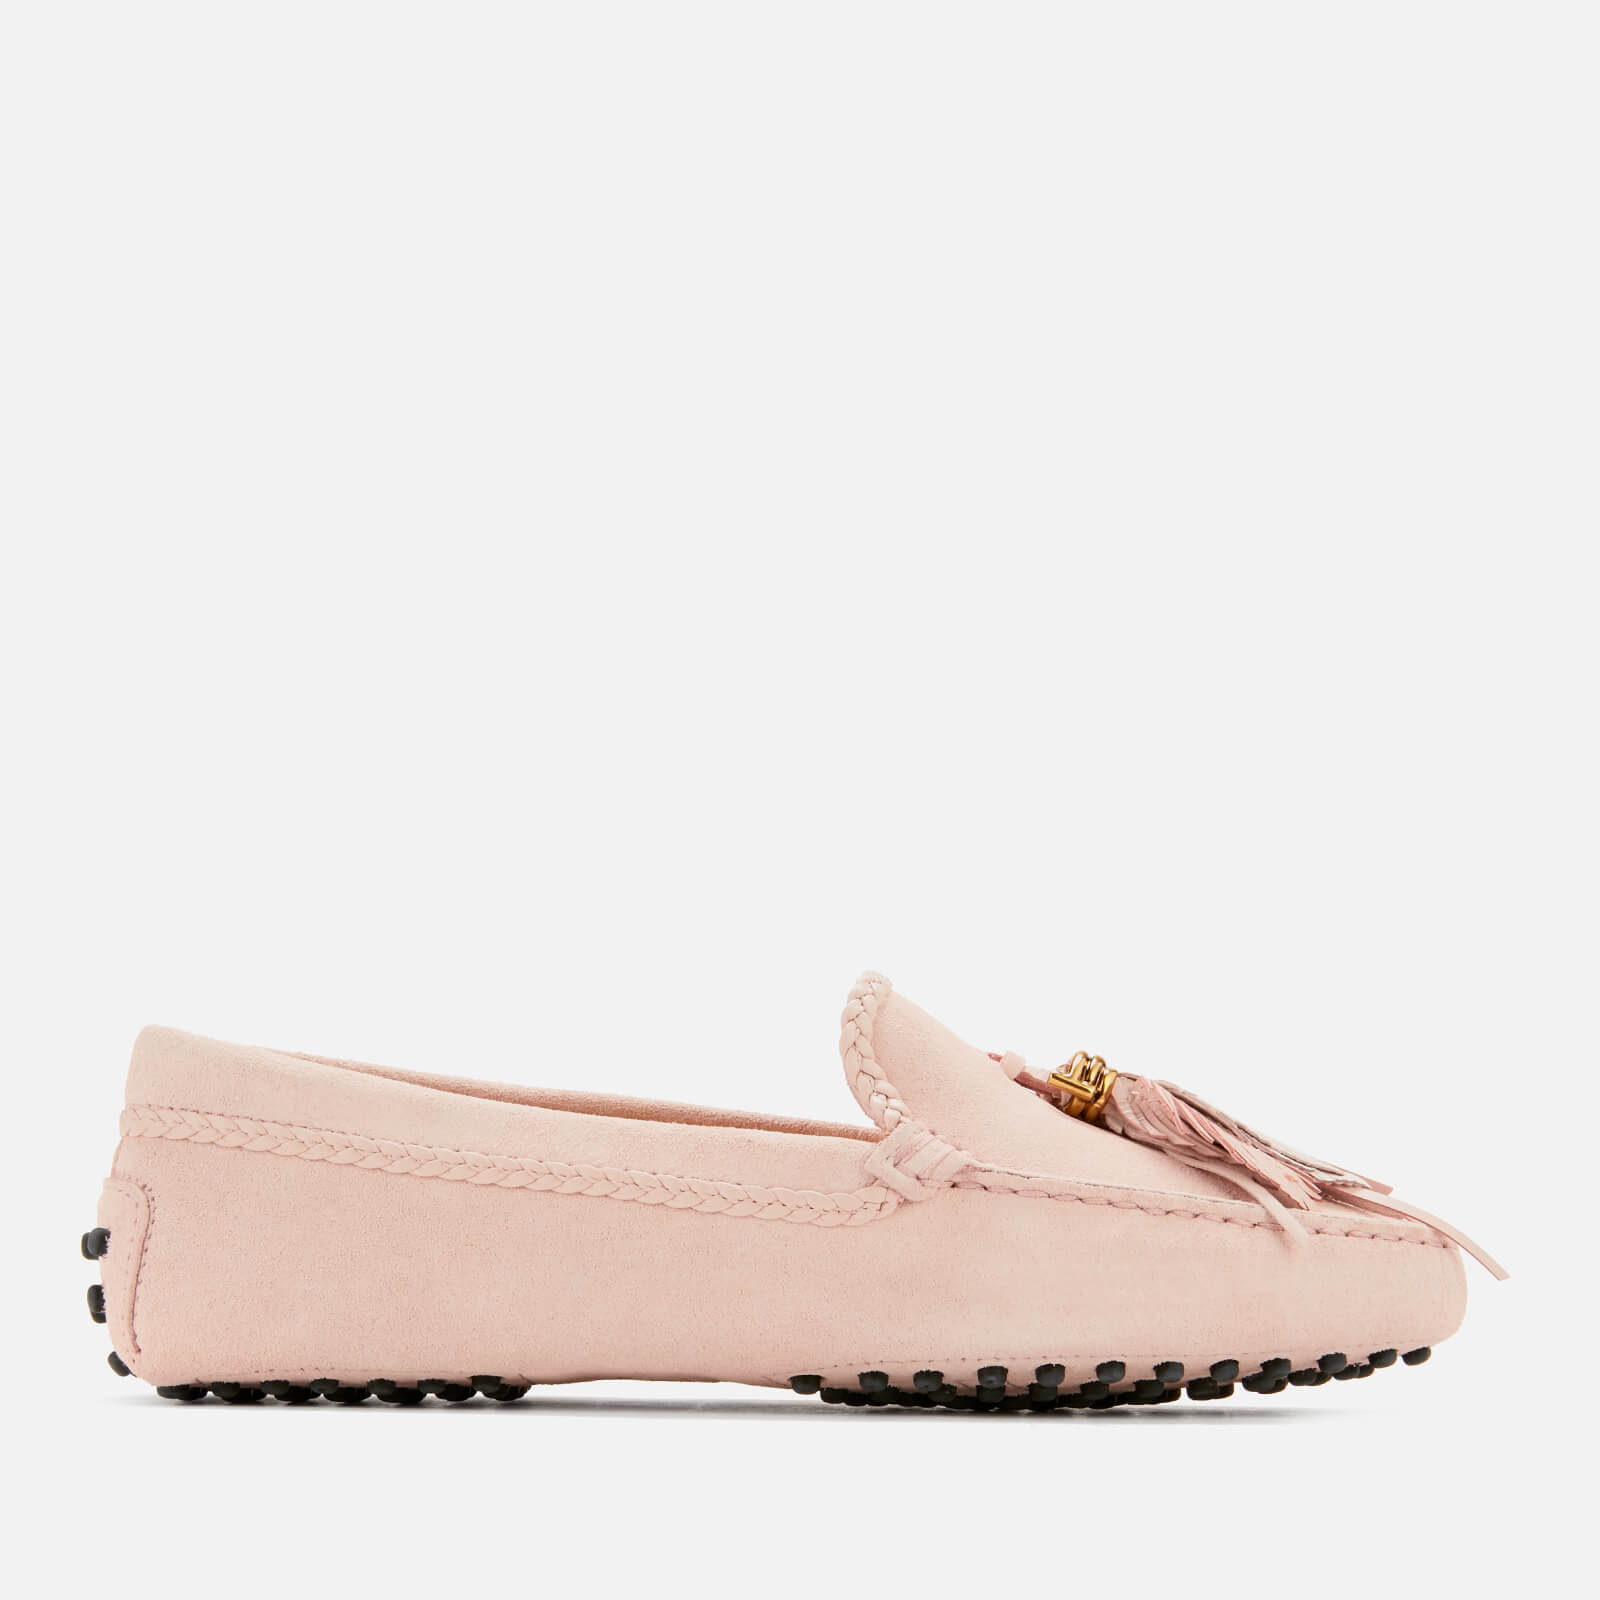 5315ce6937d Tod s Women s Gommino Feather Moccasin Shoes - Glove - Free UK Delivery  over £50